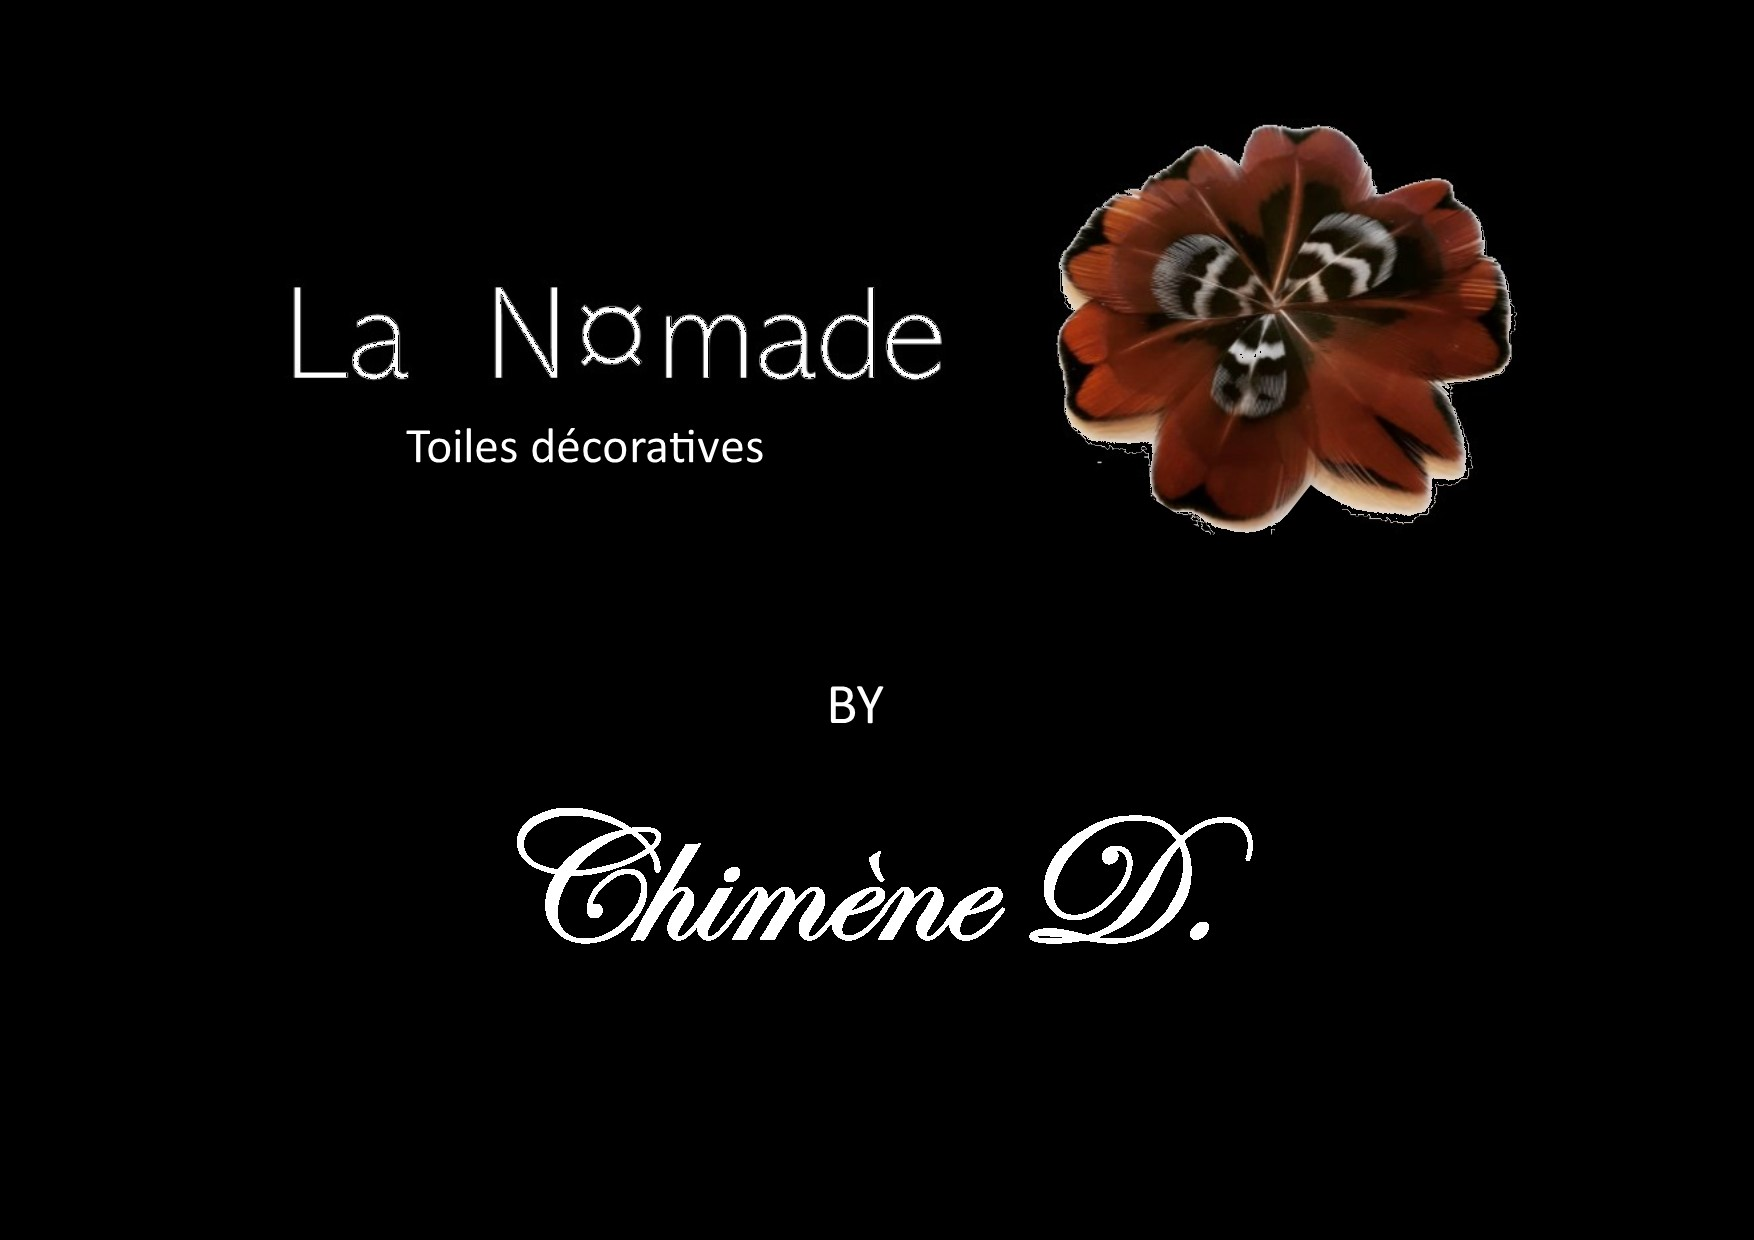 la nomade by chimène d